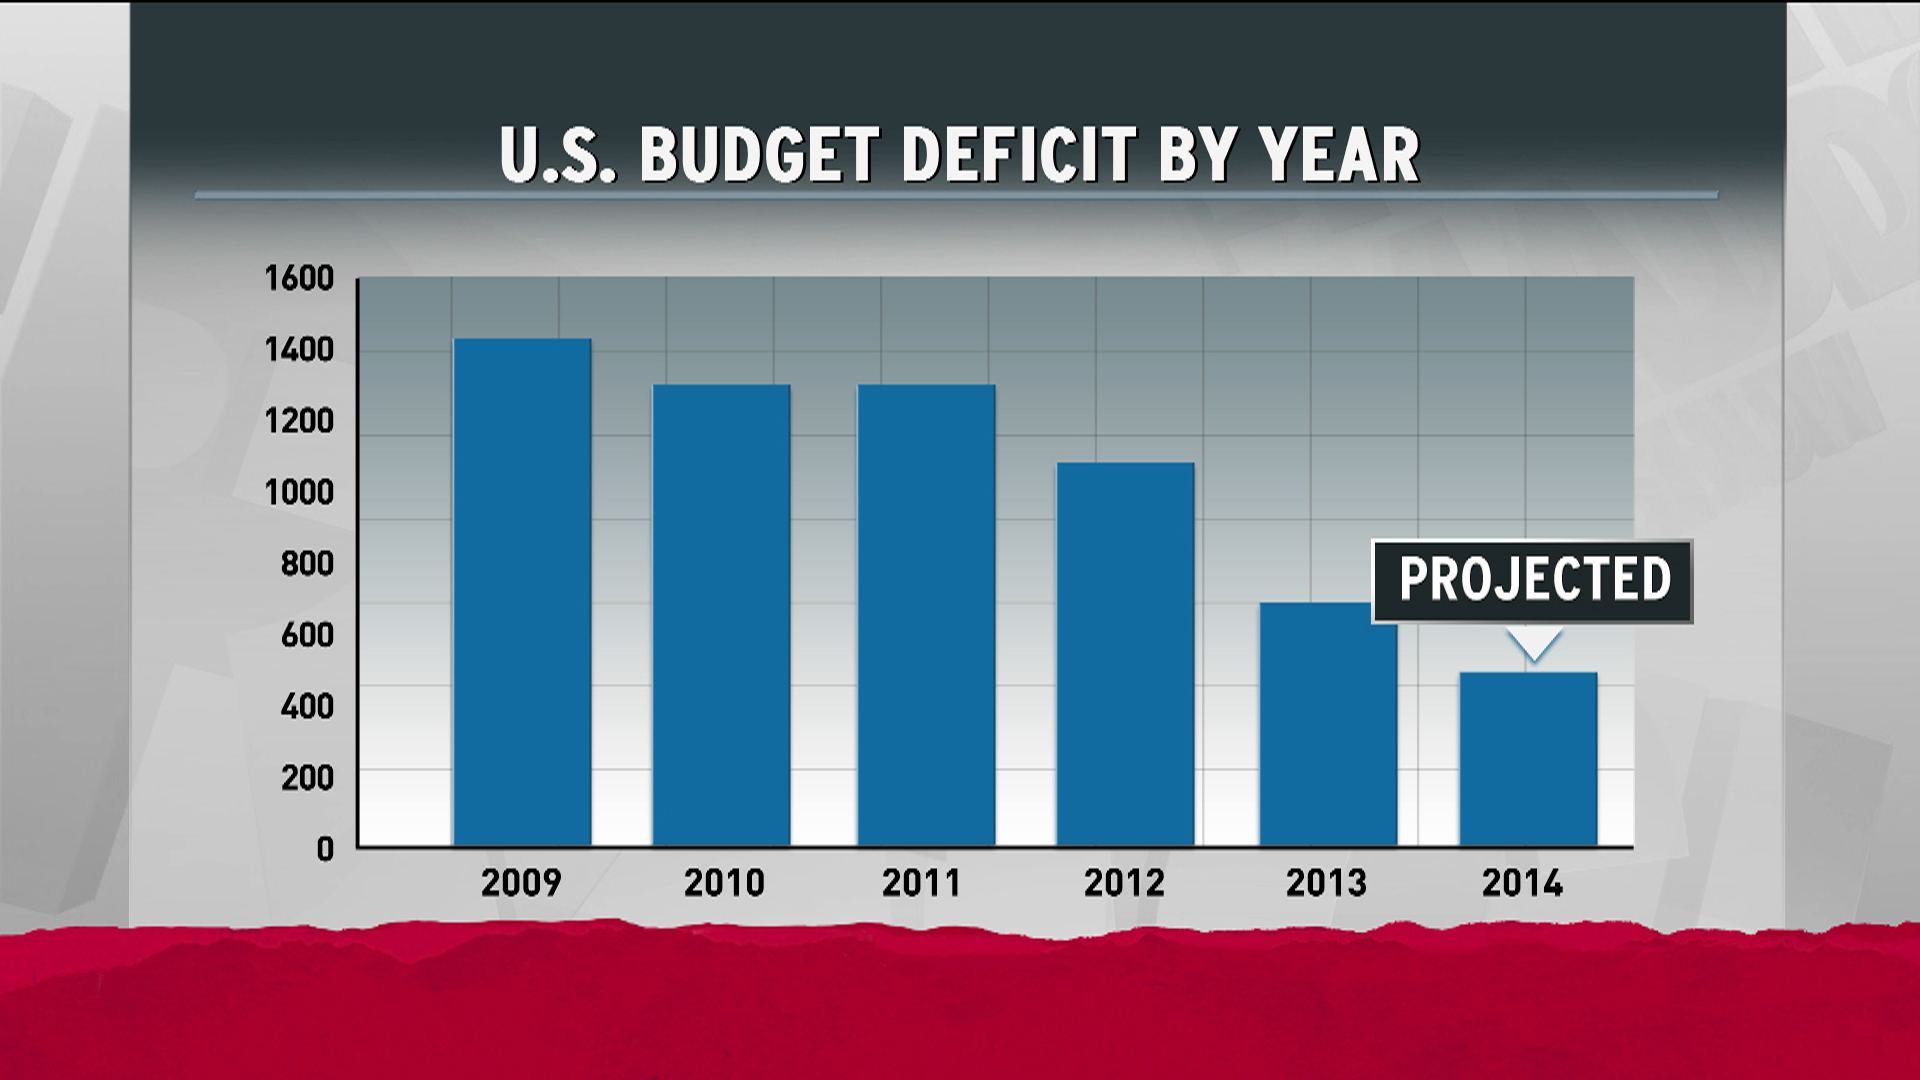 Obama extends winning record reducing deficit